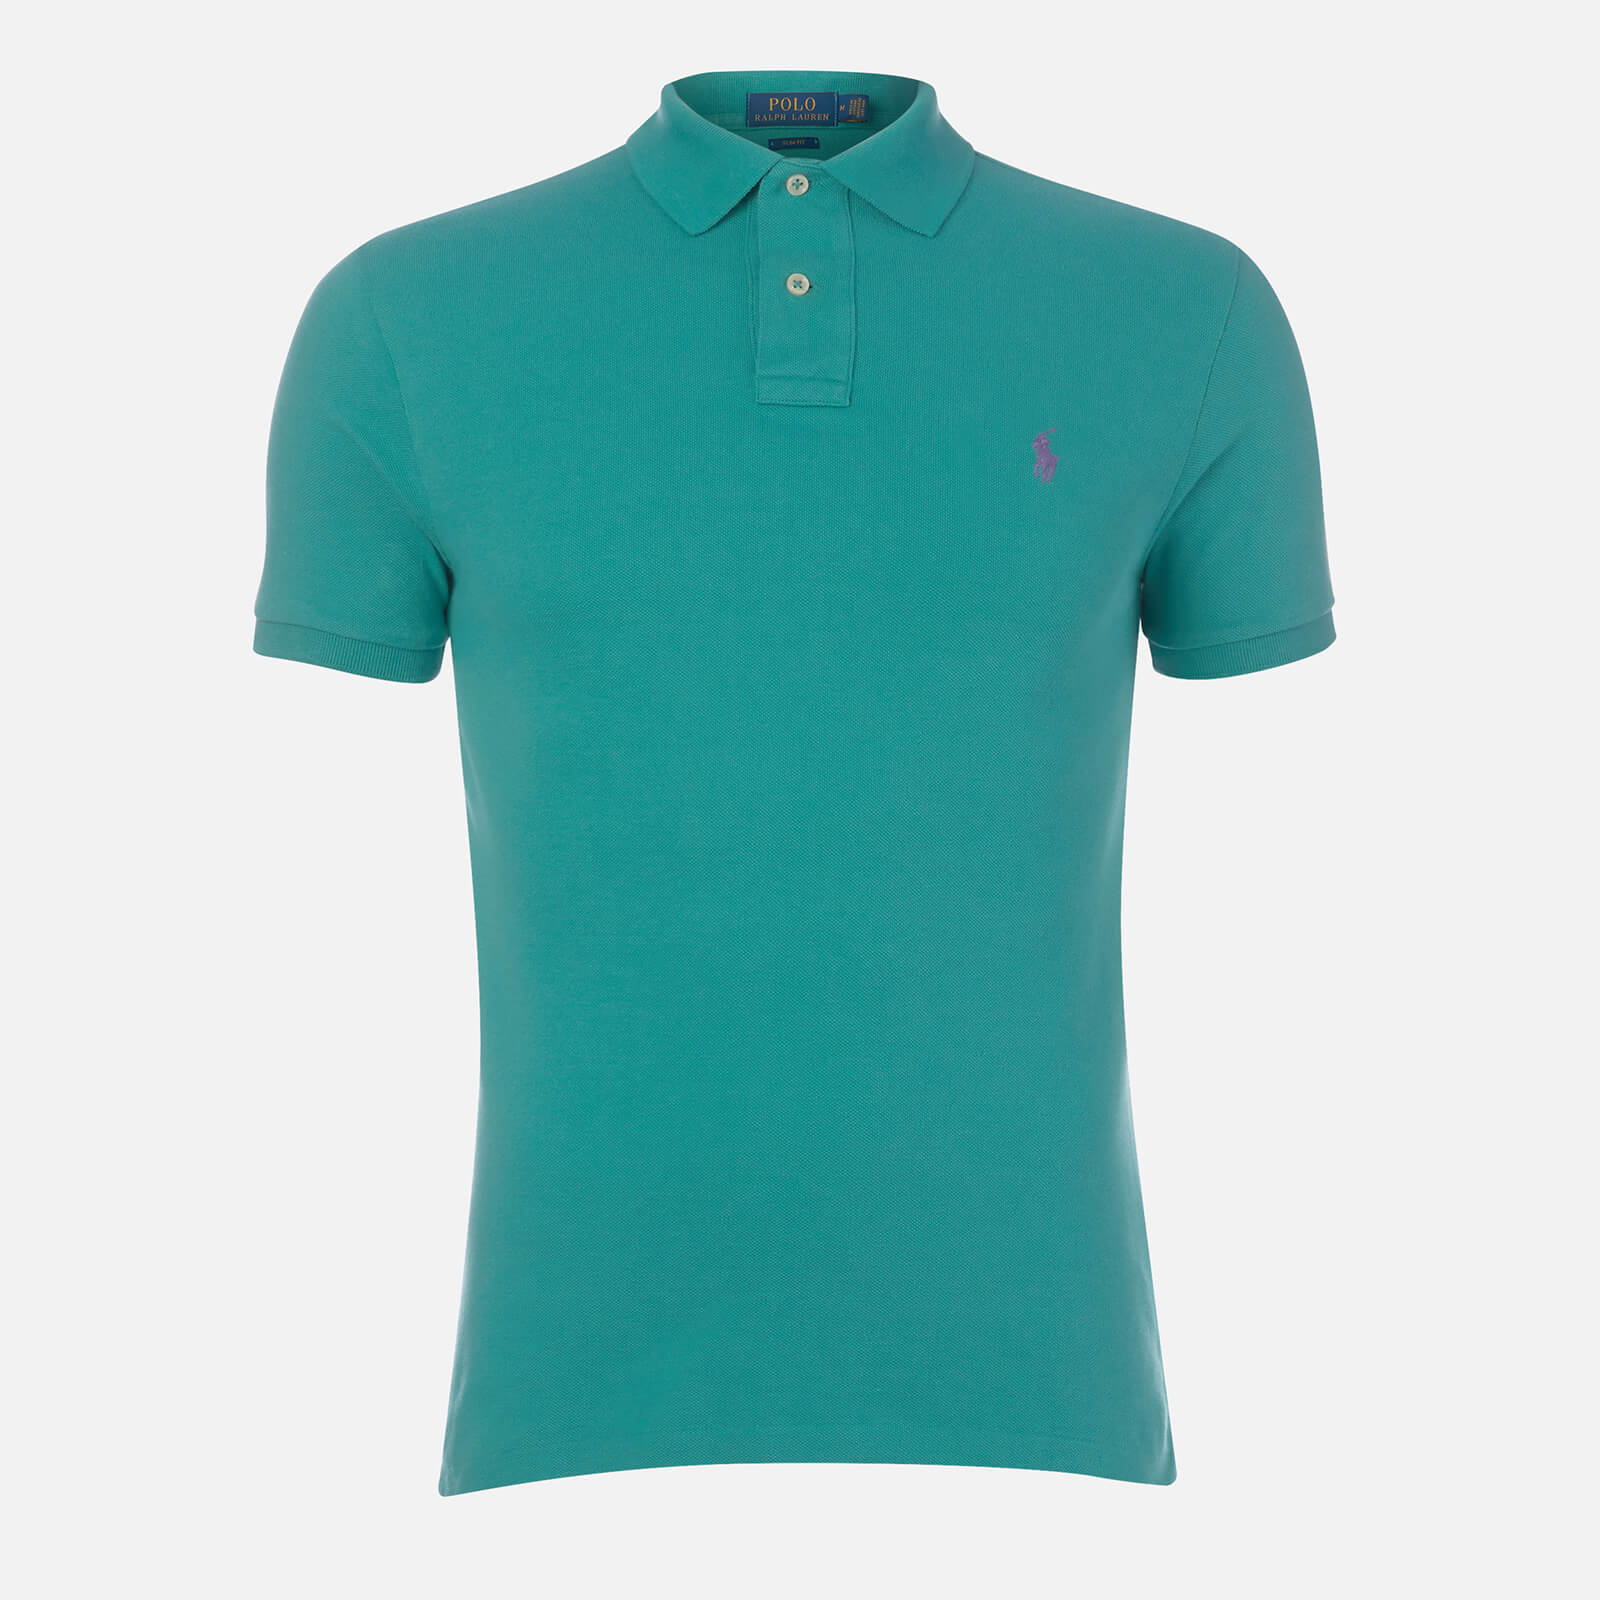 4d0a1fcd2395dc Polo Ralph Lauren Men's Slim Fit Weathered Mesh Polo Shirt - Green - Free  UK Delivery over £50